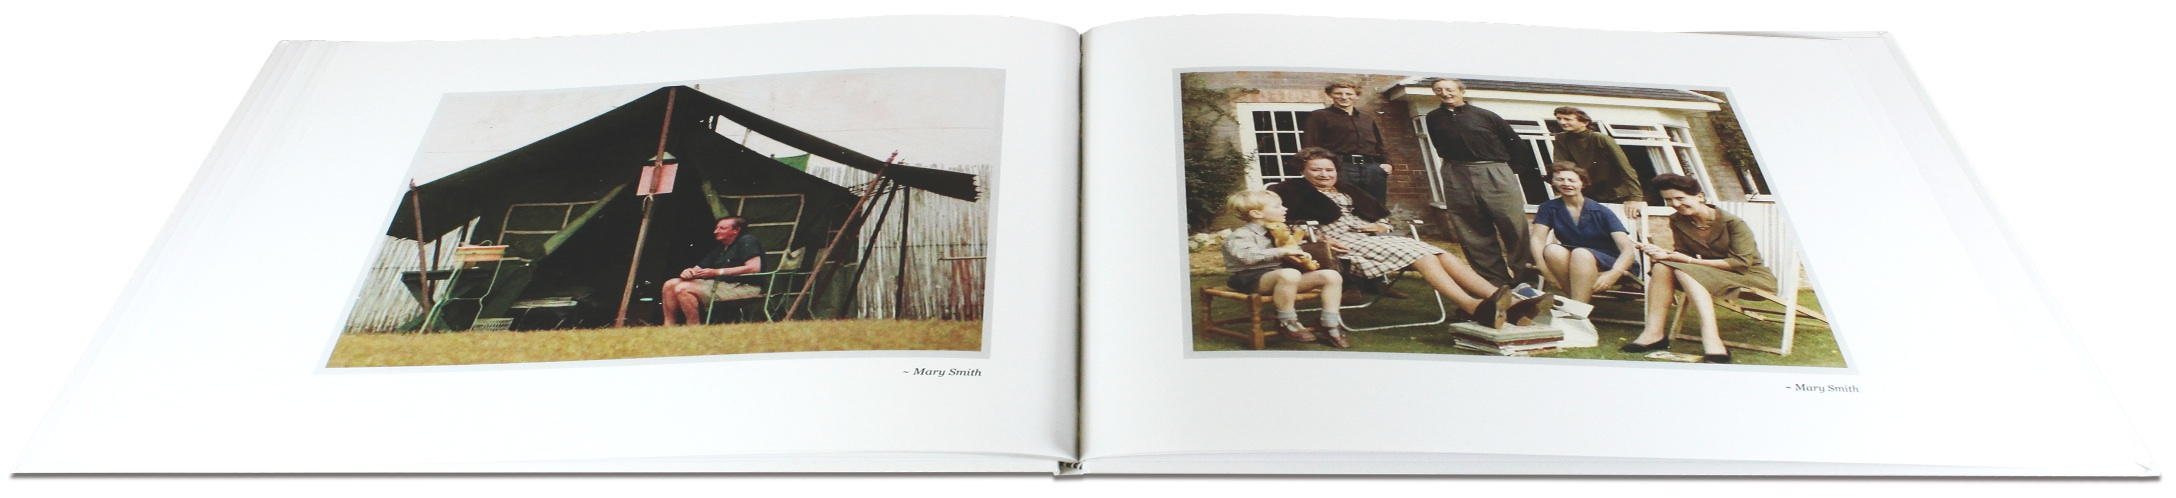 Photographs in Memorial Book